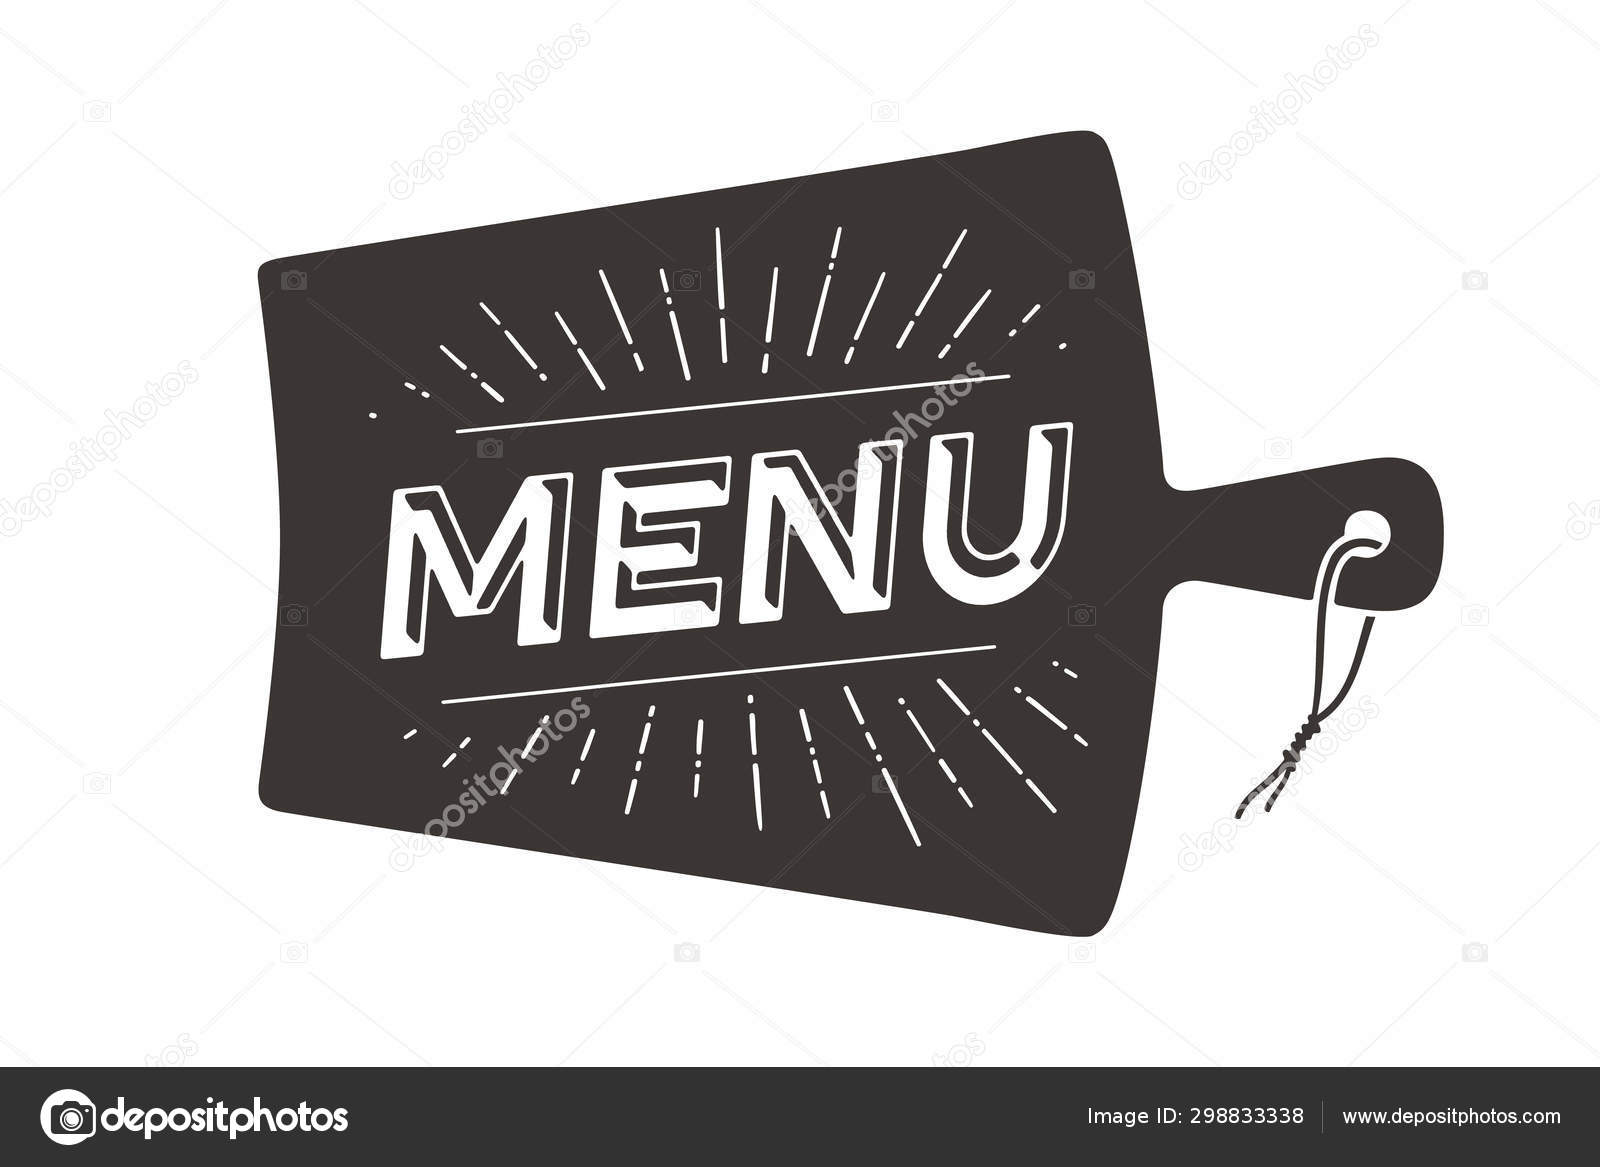 Menu Cutting Board Wall Decor Poster Sign Quote Poster Kitchen Stock Vector C Foxysgraphic 298833338